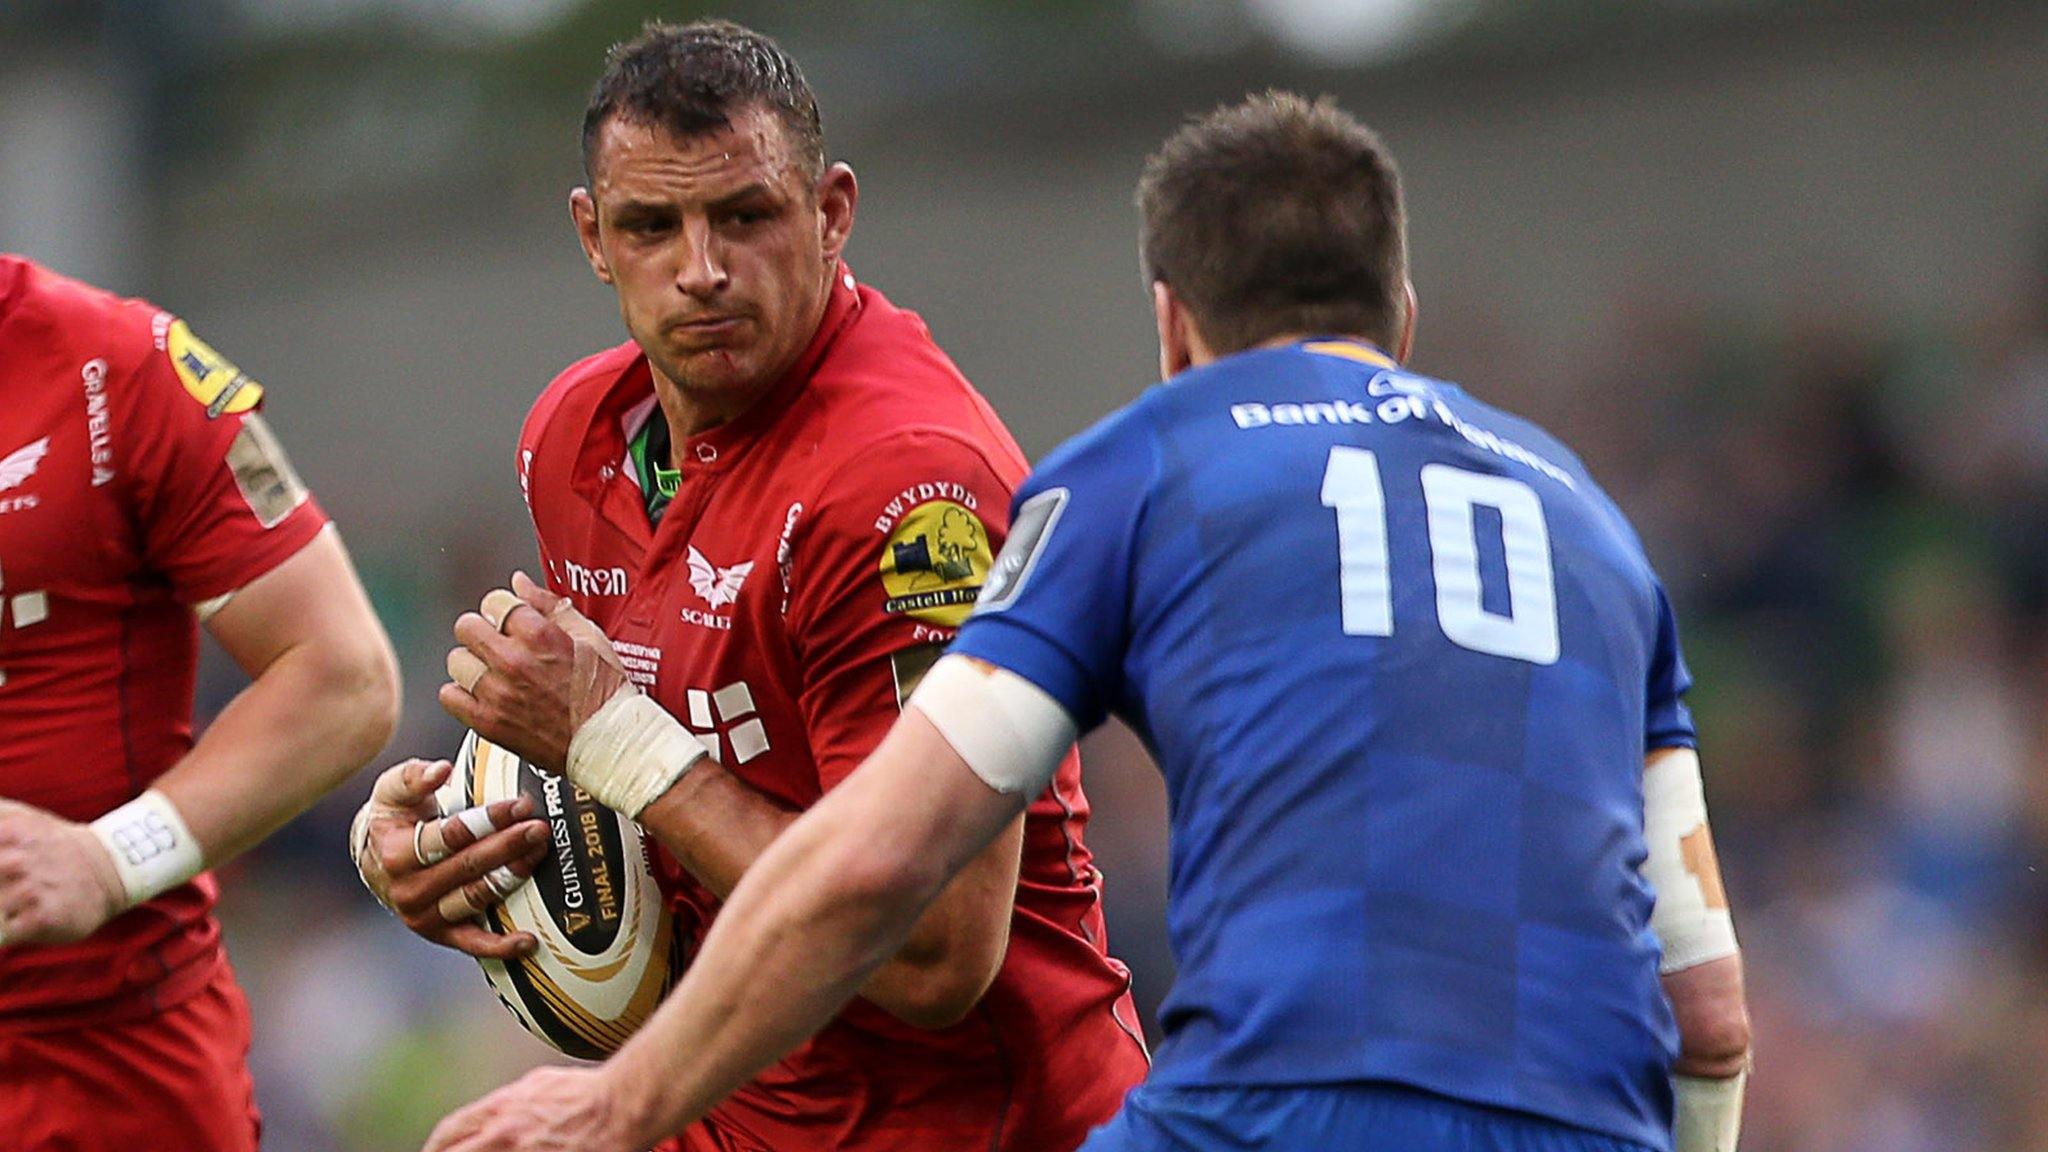 Aaron Shingler and Ashton Hewitt ruled out of Wales tour